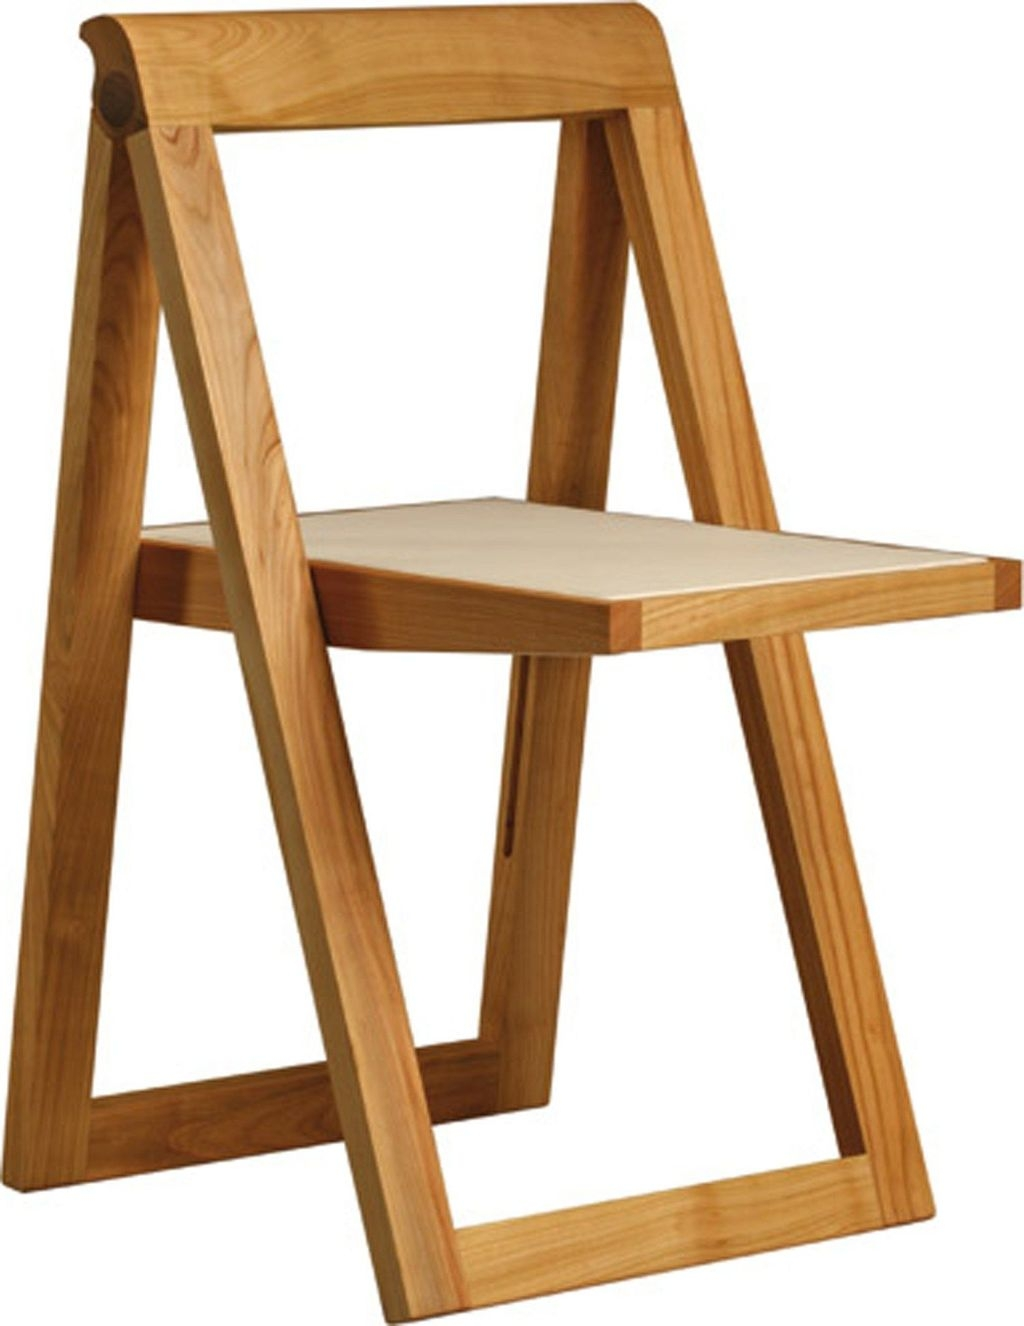 Modern Folding Chair Design Ideas To Copy Asap12